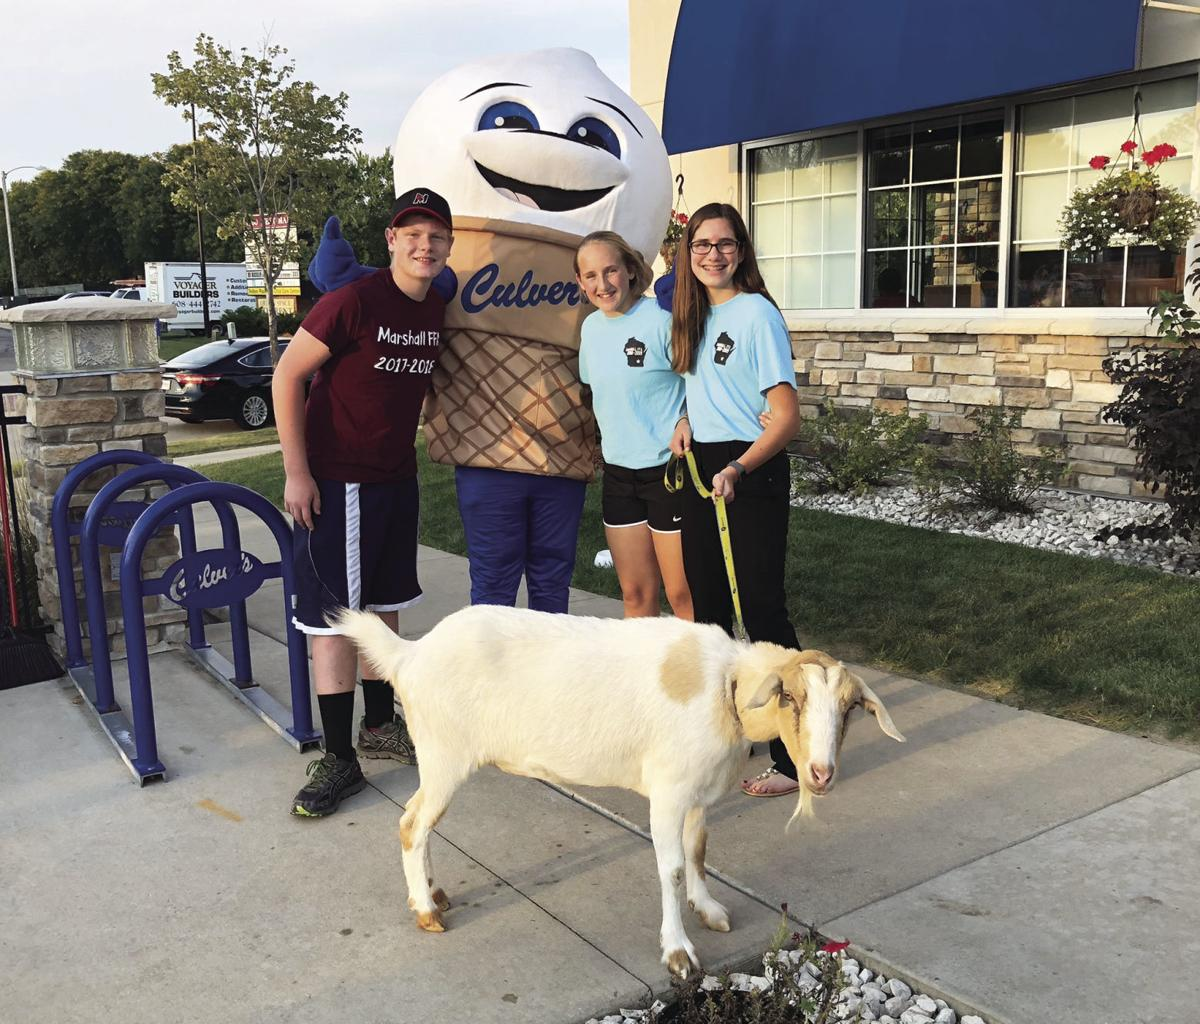 Marshall FFA Culvers night